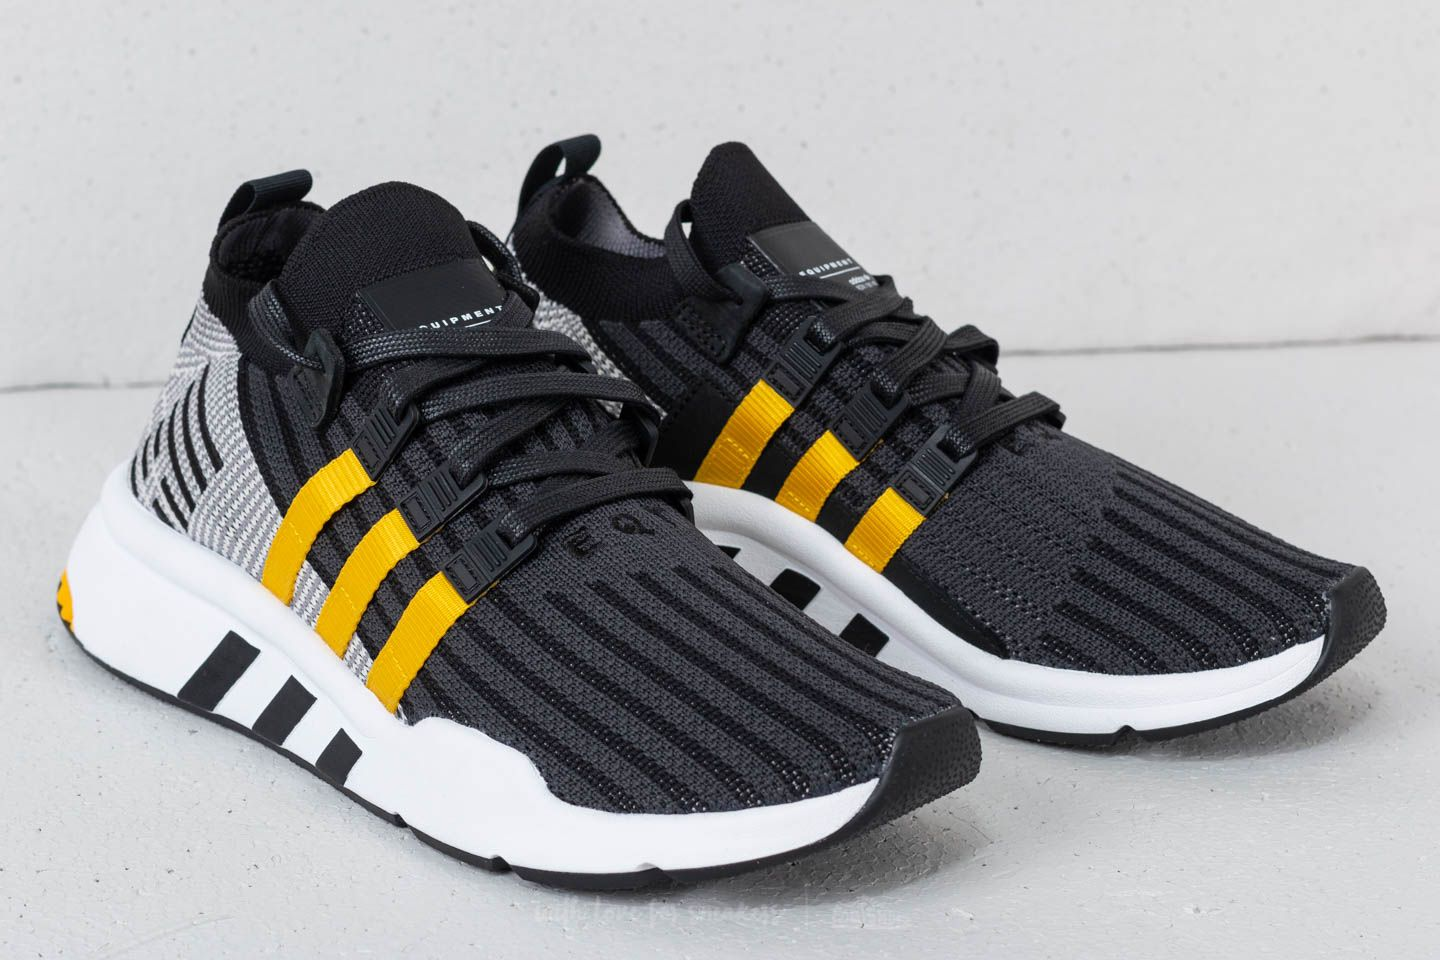 dad943f0917a ireland adidas eqt support mid adv primeknit core black eqt yellow ftw white  at a 08551